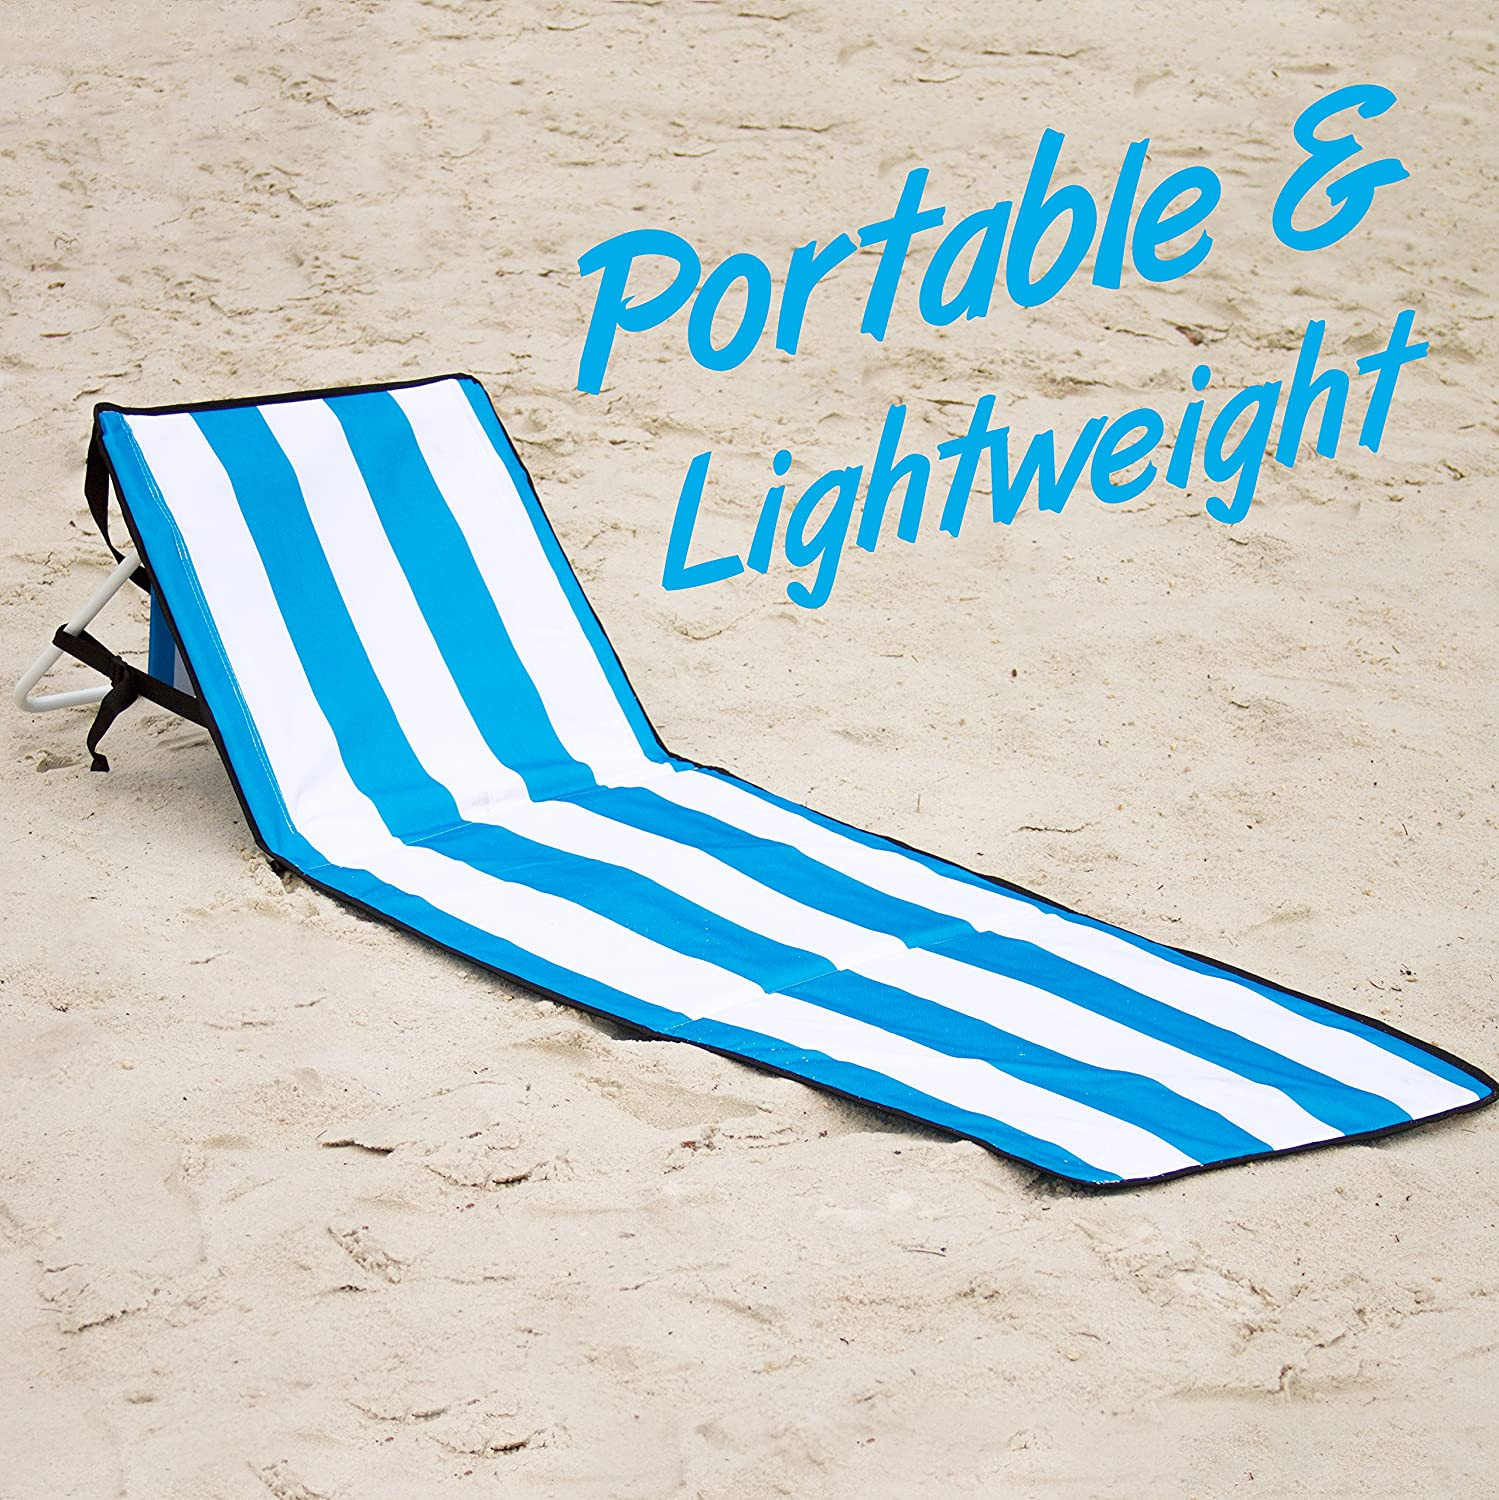 Beach lounge chair portable - Amazon Com June May Beach Chairs Compact Portable Light Weight Easy Set Up With Storage Pouch And Adjustable Back Beach Lounge Chairs Patio